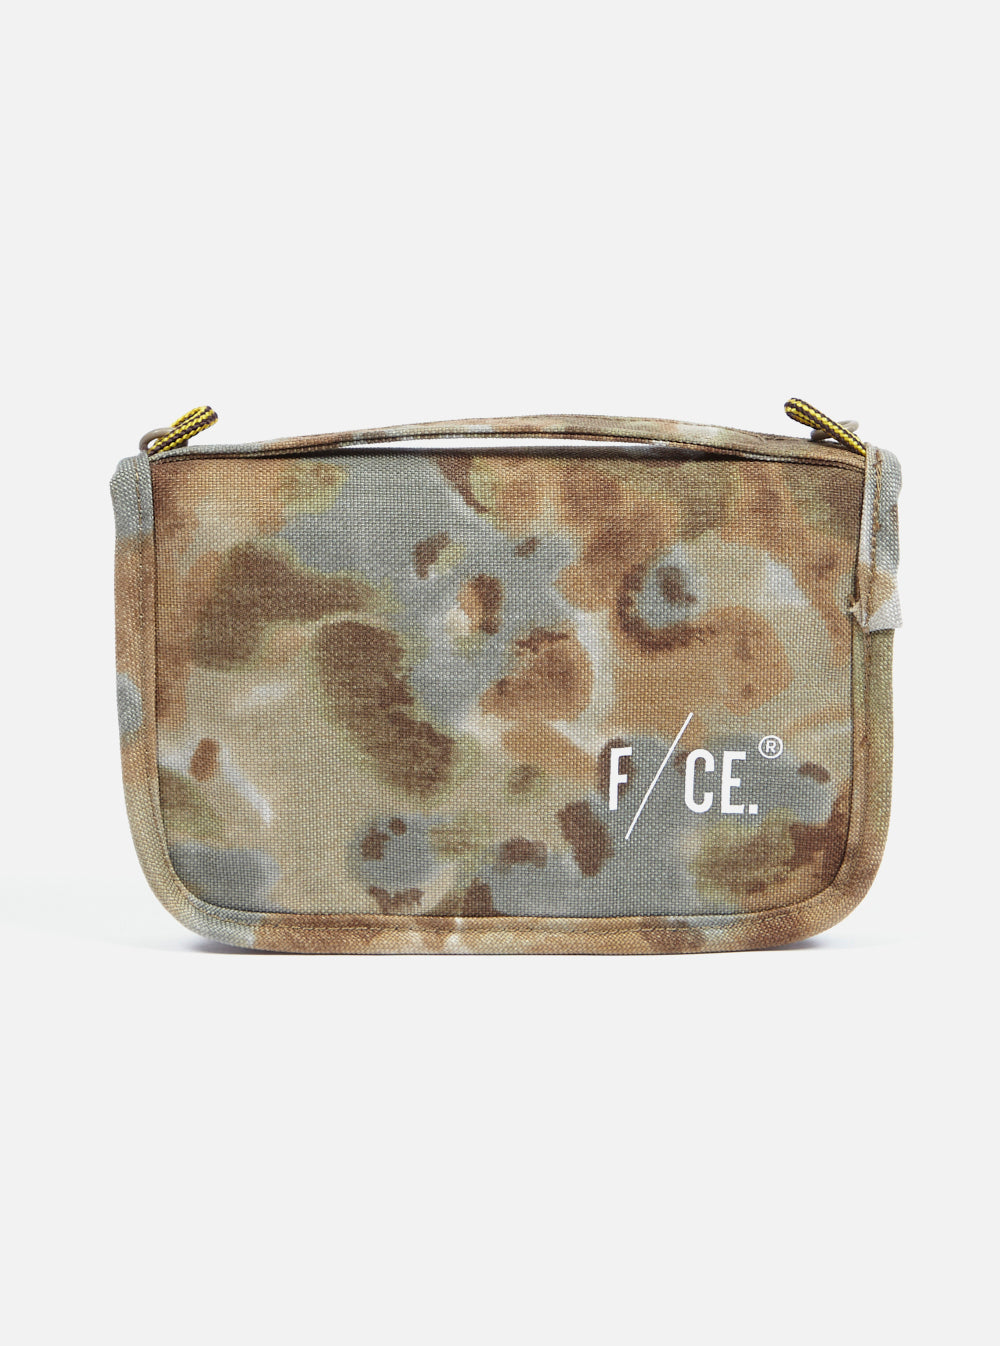 F/CE.® US CDR Pass in US Camo Cordura